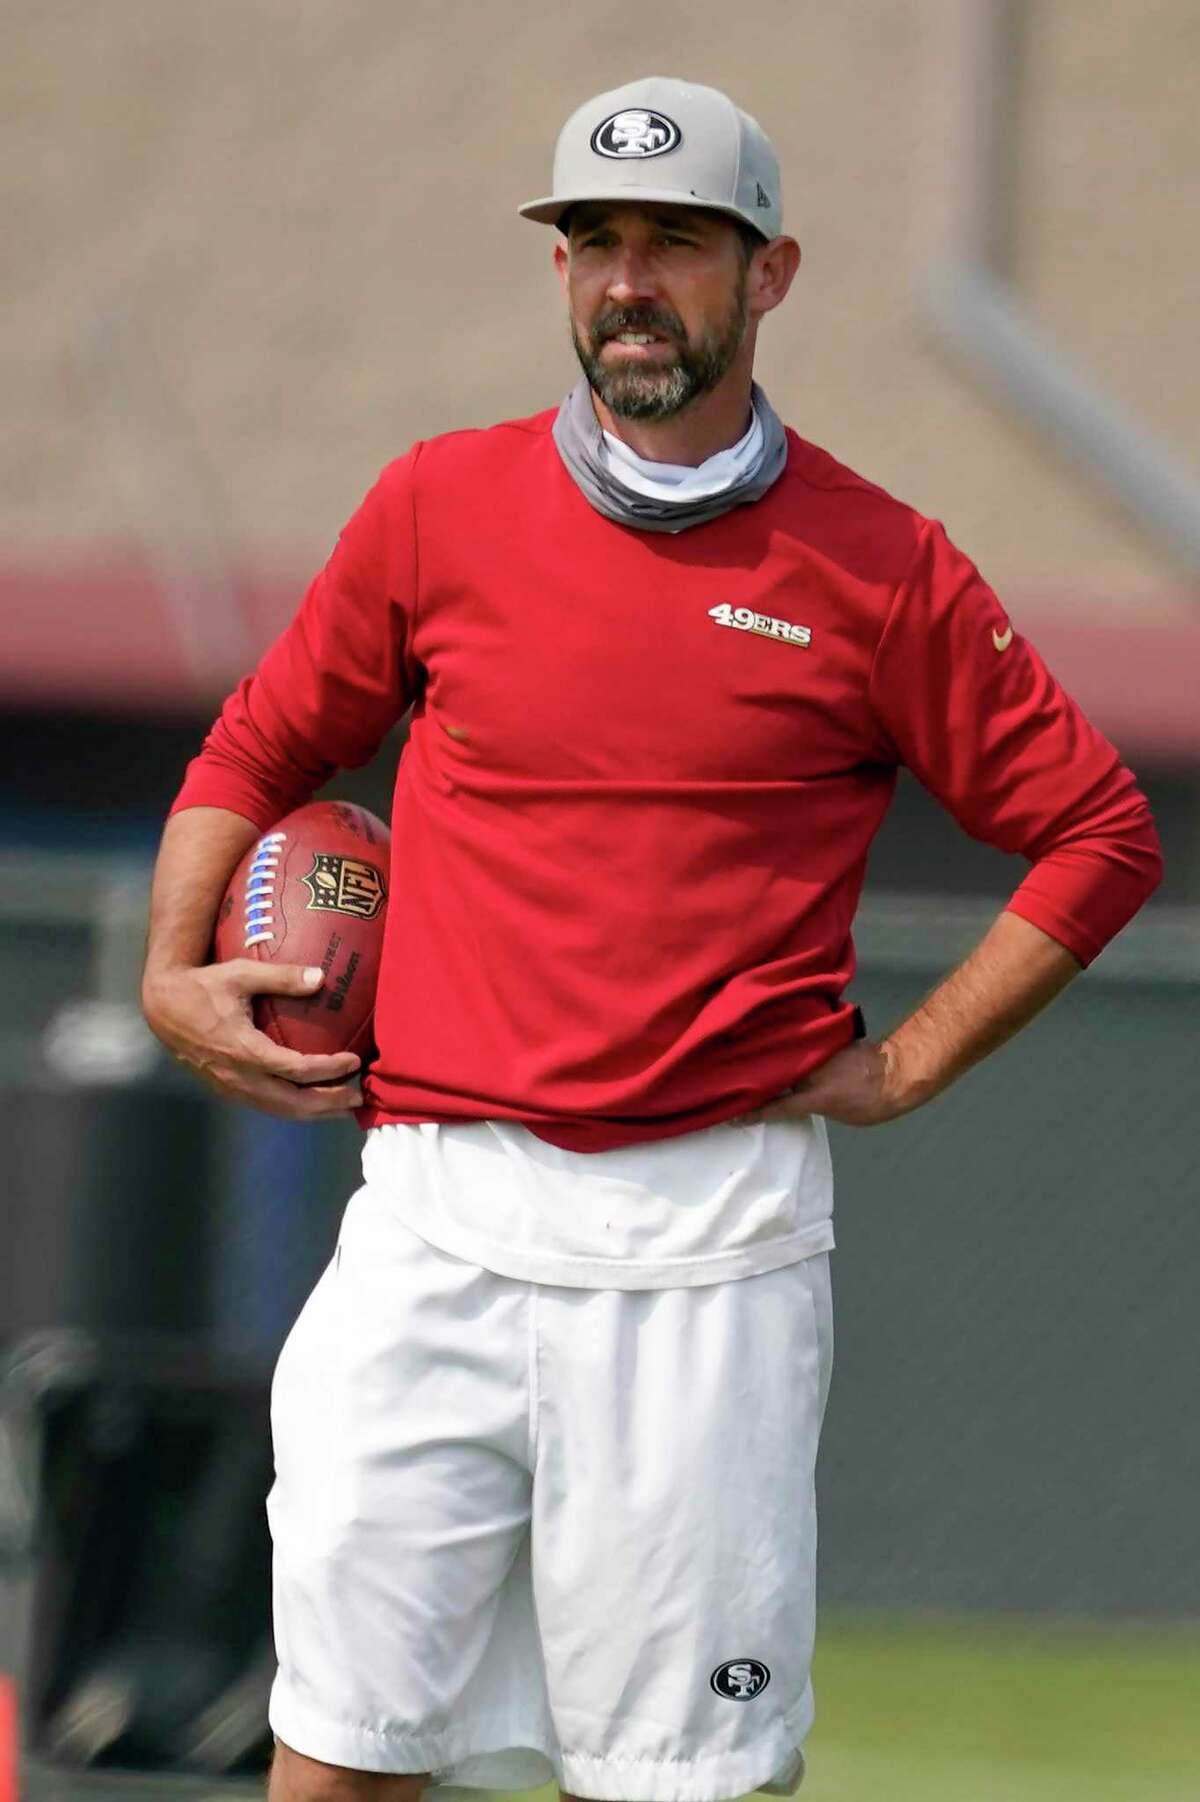 Bay Area fans will be focused on head coach Kyle Shanahan and the 49ers, who have the third pick in the NFL draft, which begins at 5 p.m. Thursday (Channels 7, 10, ESPN, NFL Network/104.5, 680, 1050).